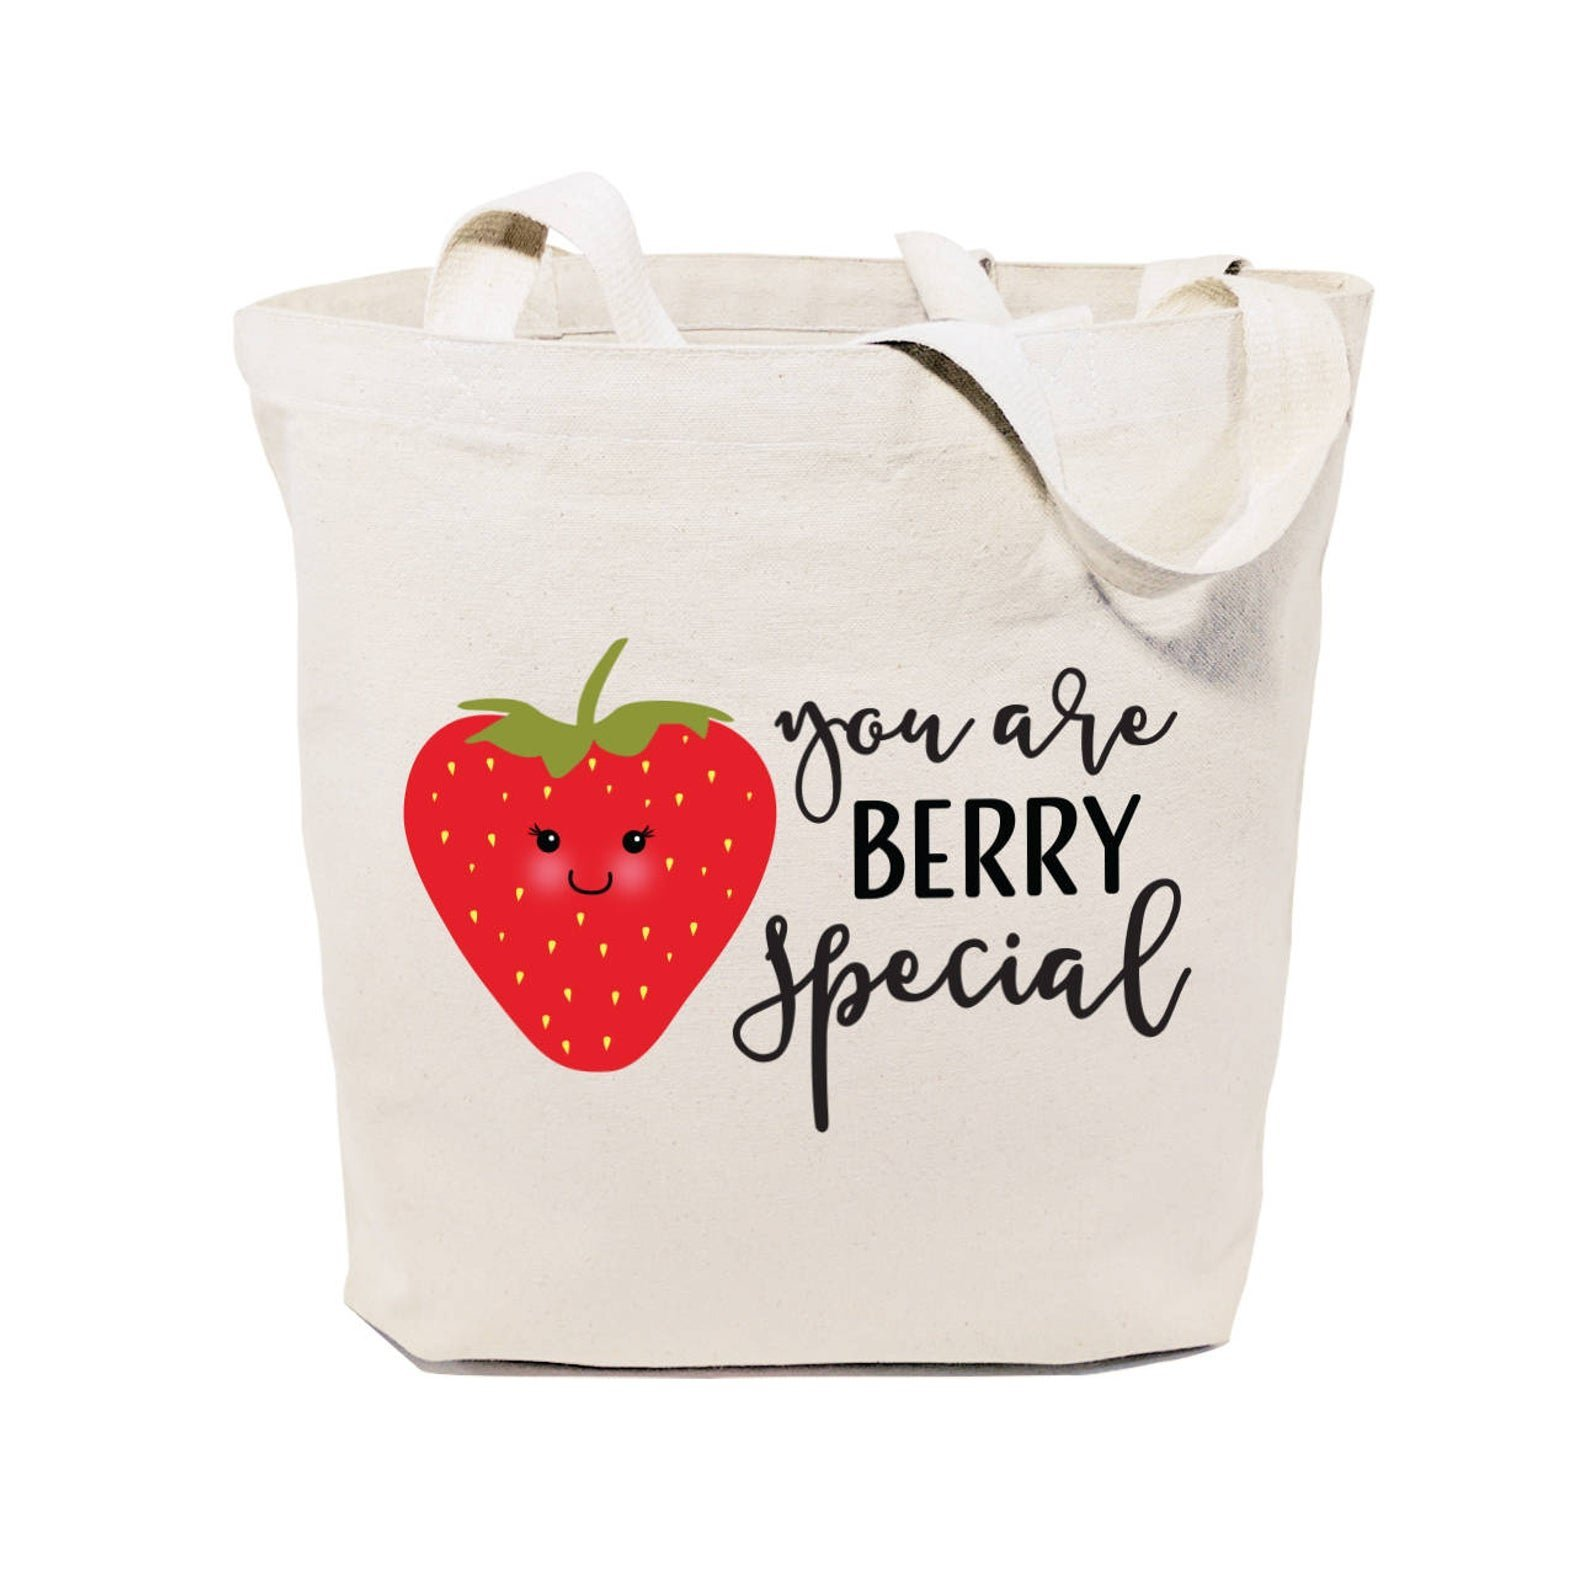 tote bag that says you are berry special with strawberry on it